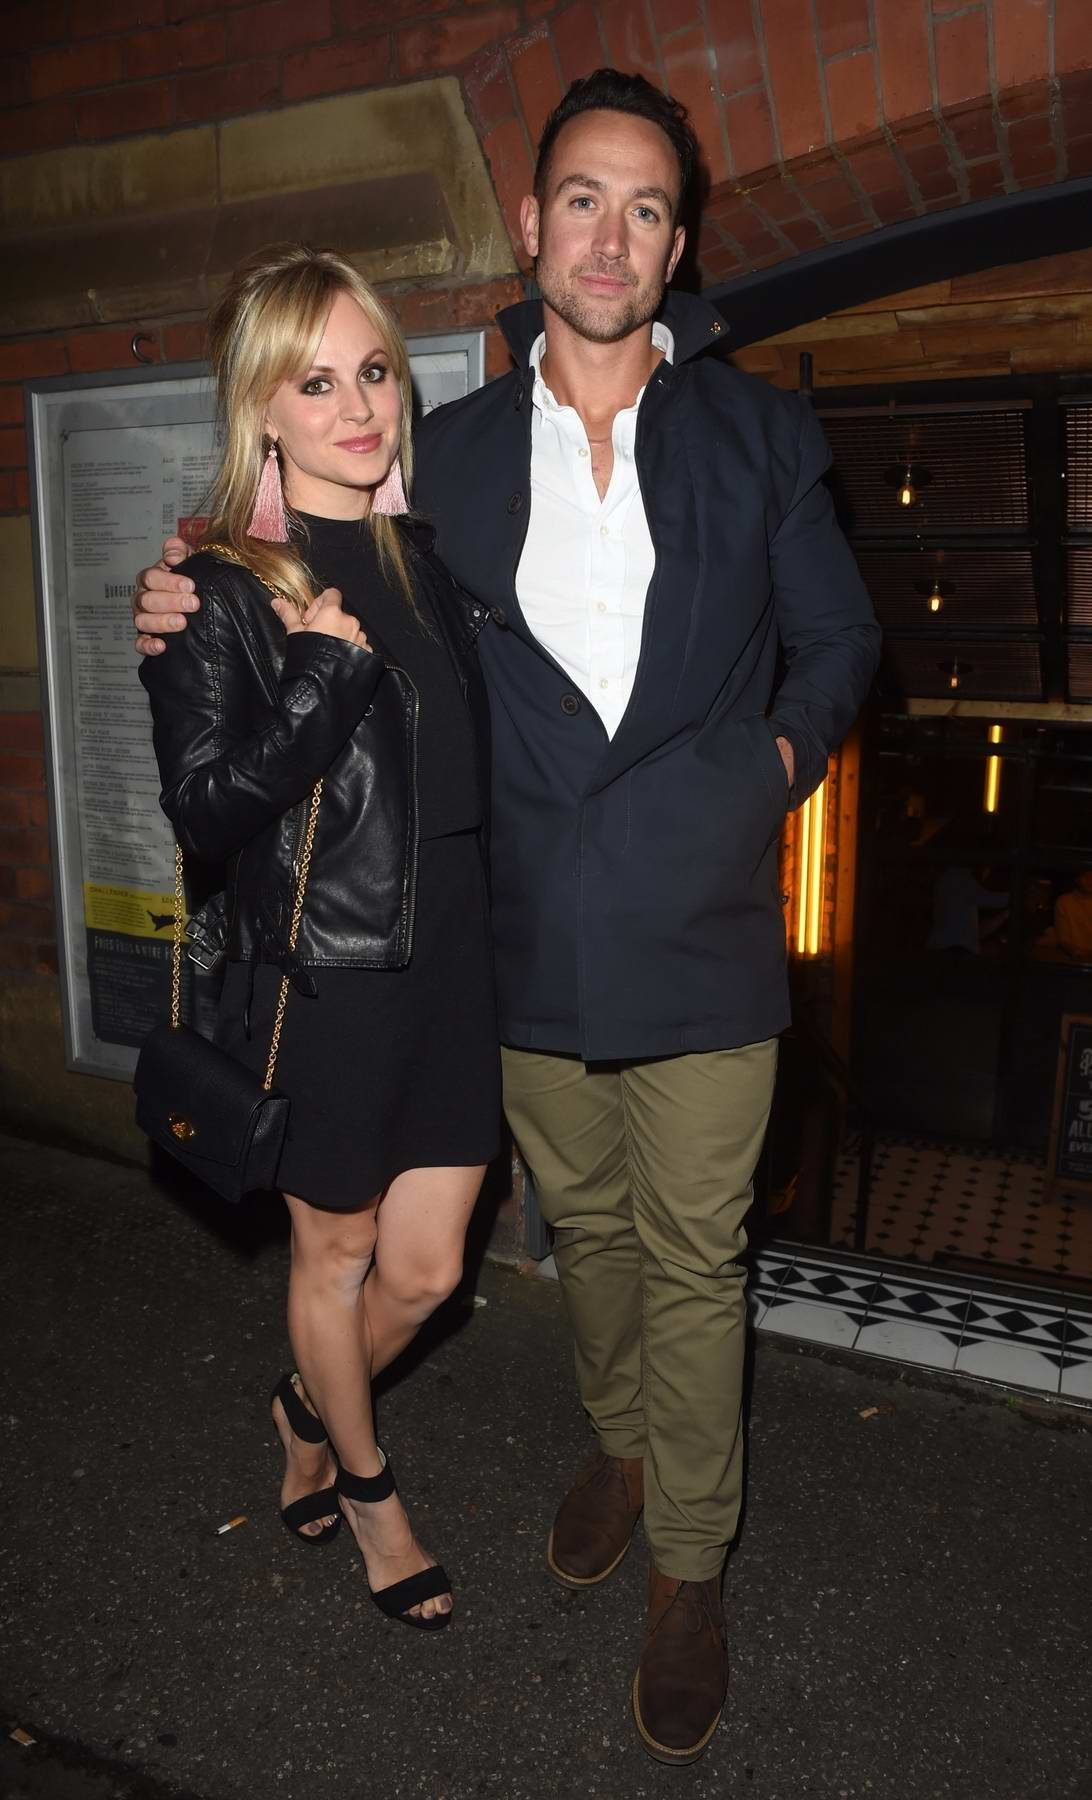 Tina O'Brien and Adam Crofts enjoying a night out at The Smoke House Cellar Bar and Restaurant in Manchester, UK